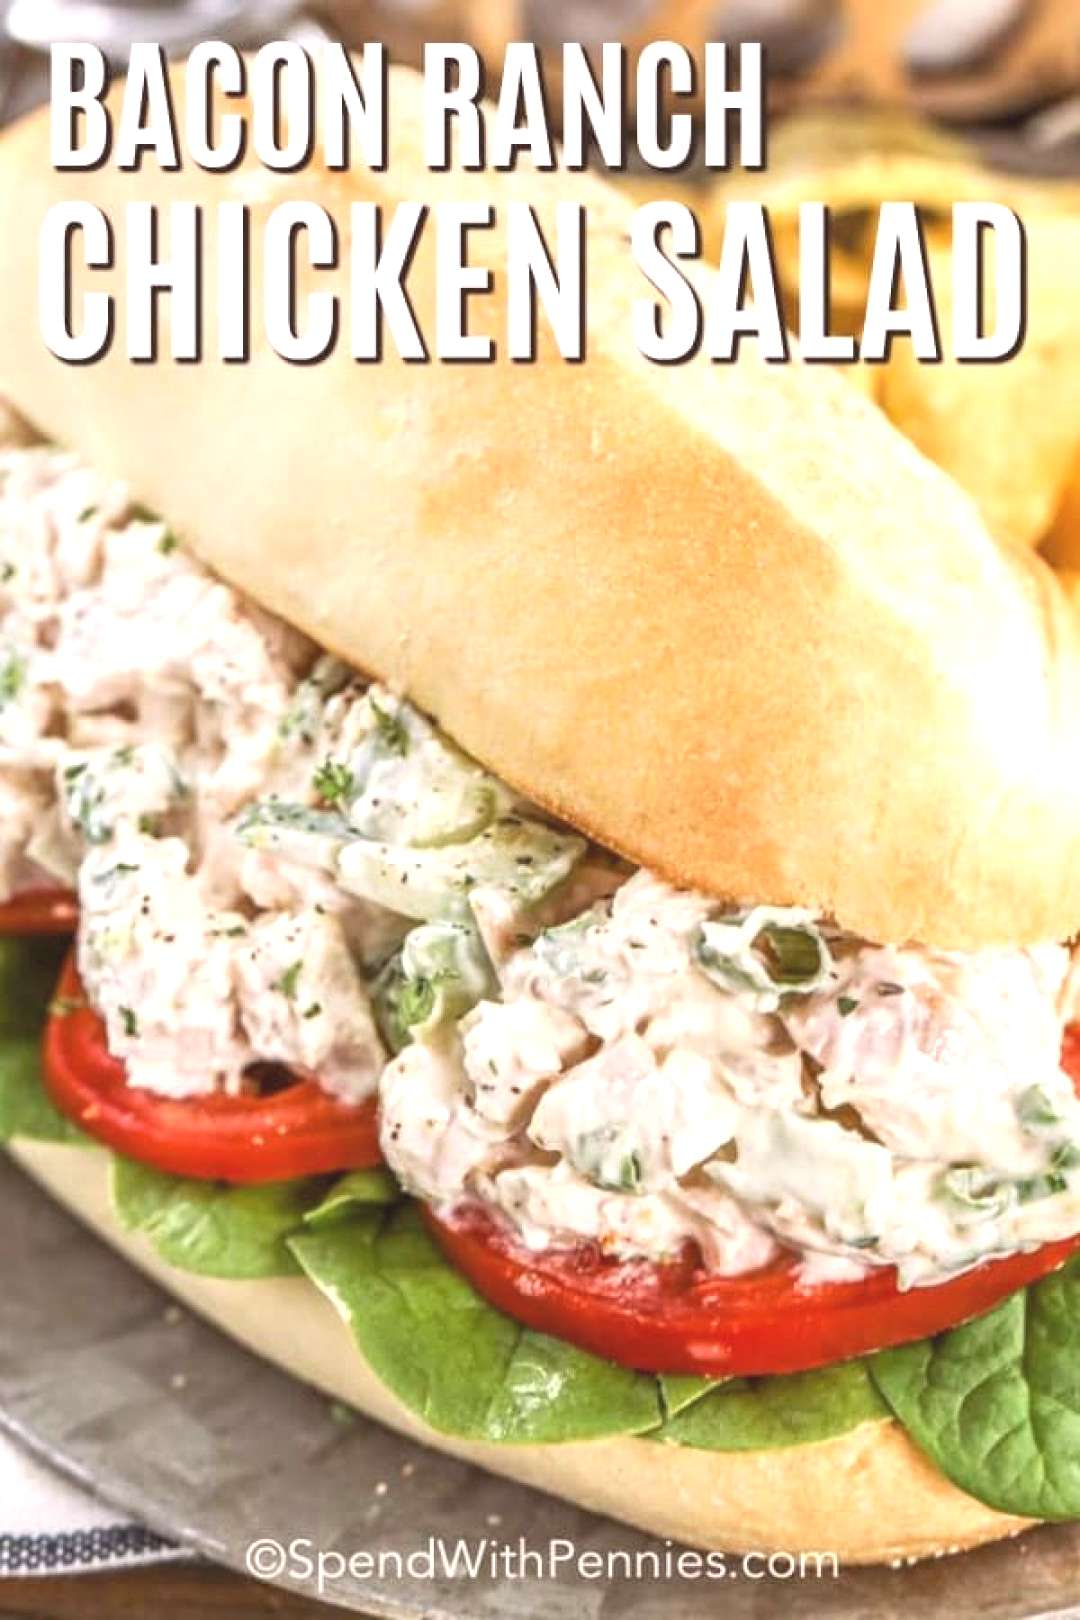 Bacon Ranch Chicken Salad - Spend With Pennies,Take your chicken salad to the next level by a... Ba